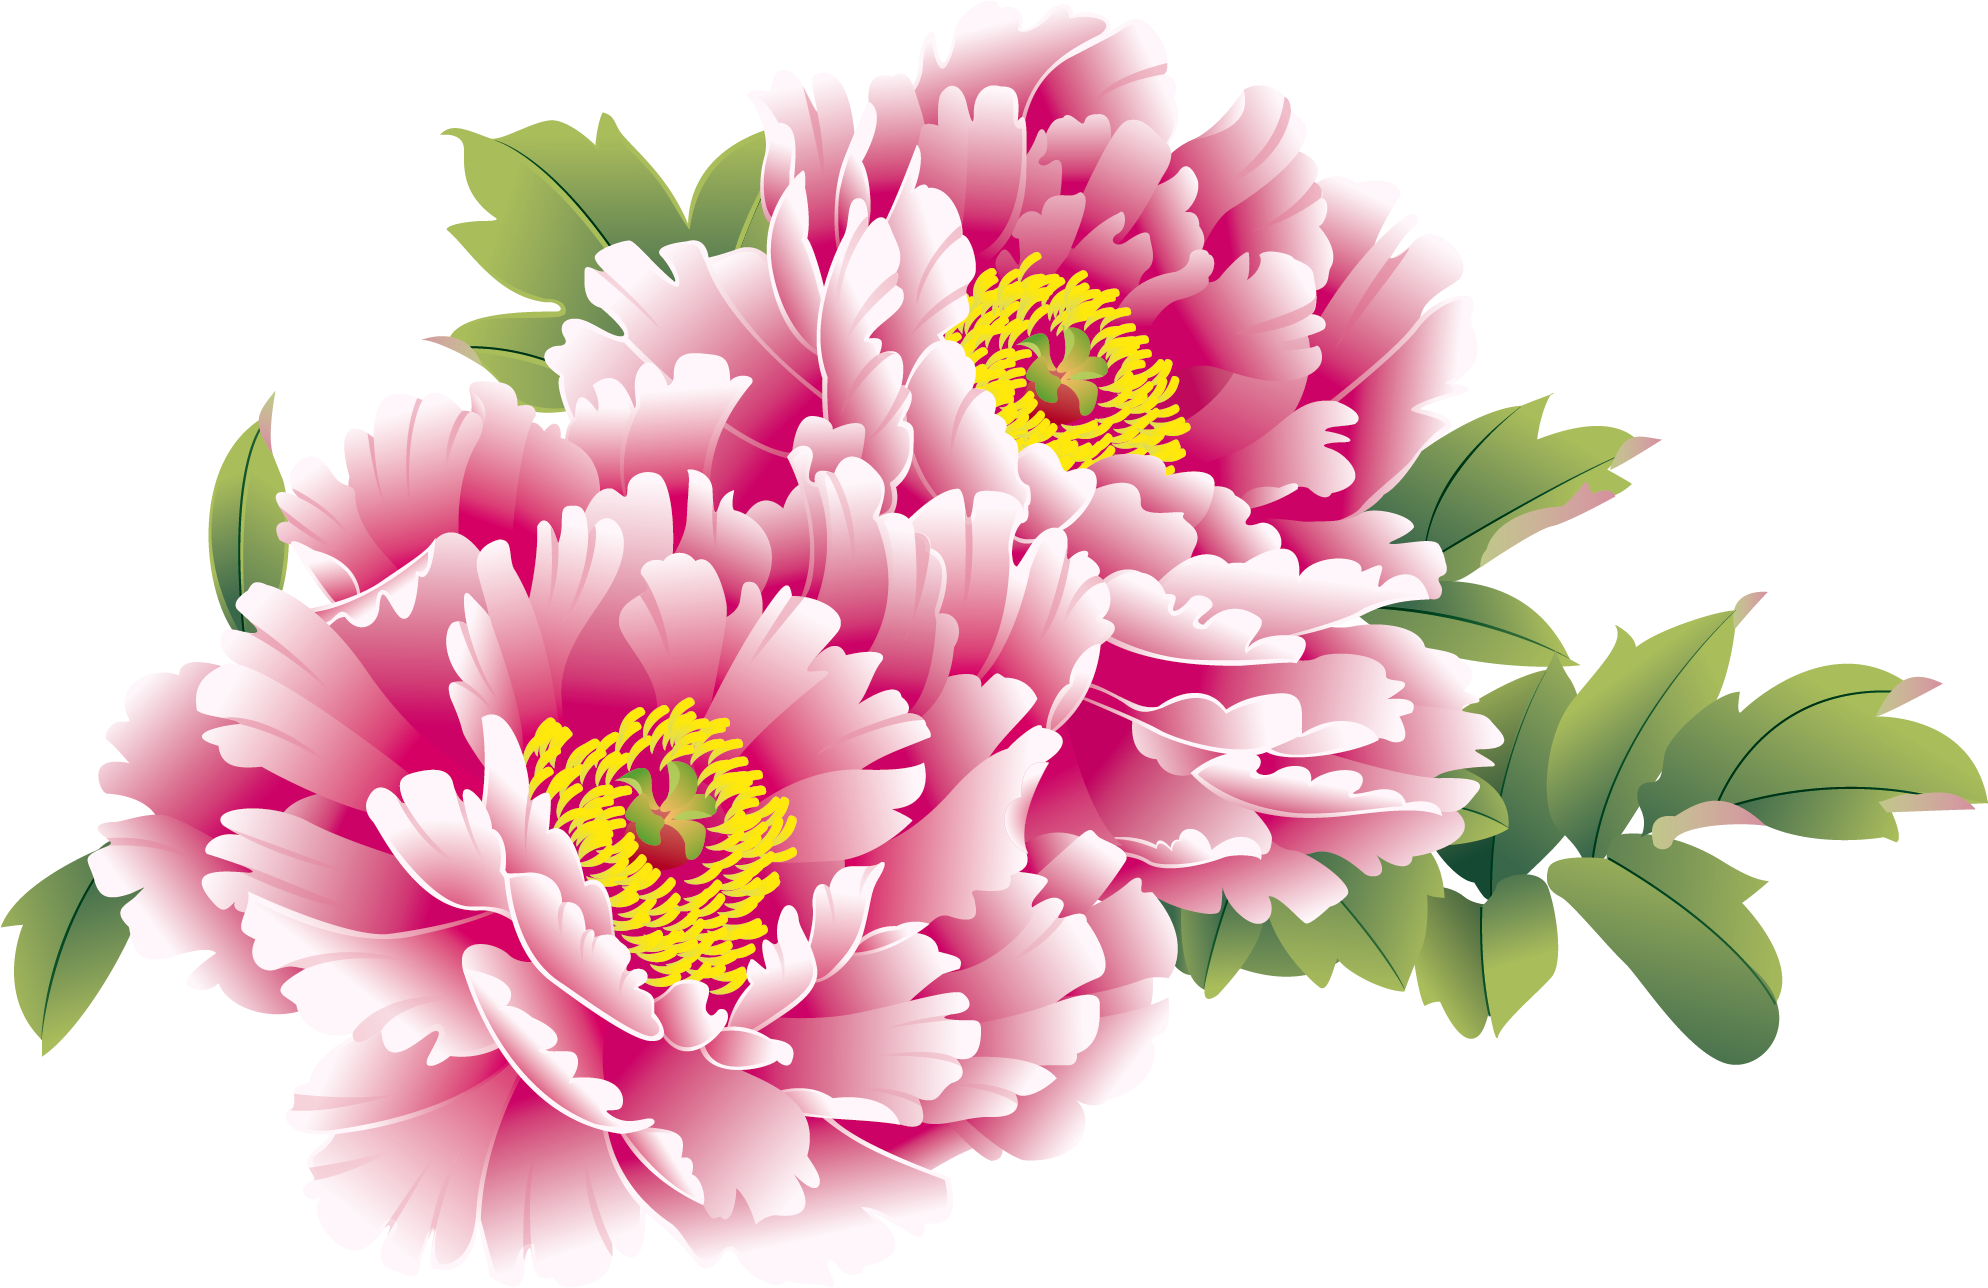 Chinese flowers png. China moutan peony new